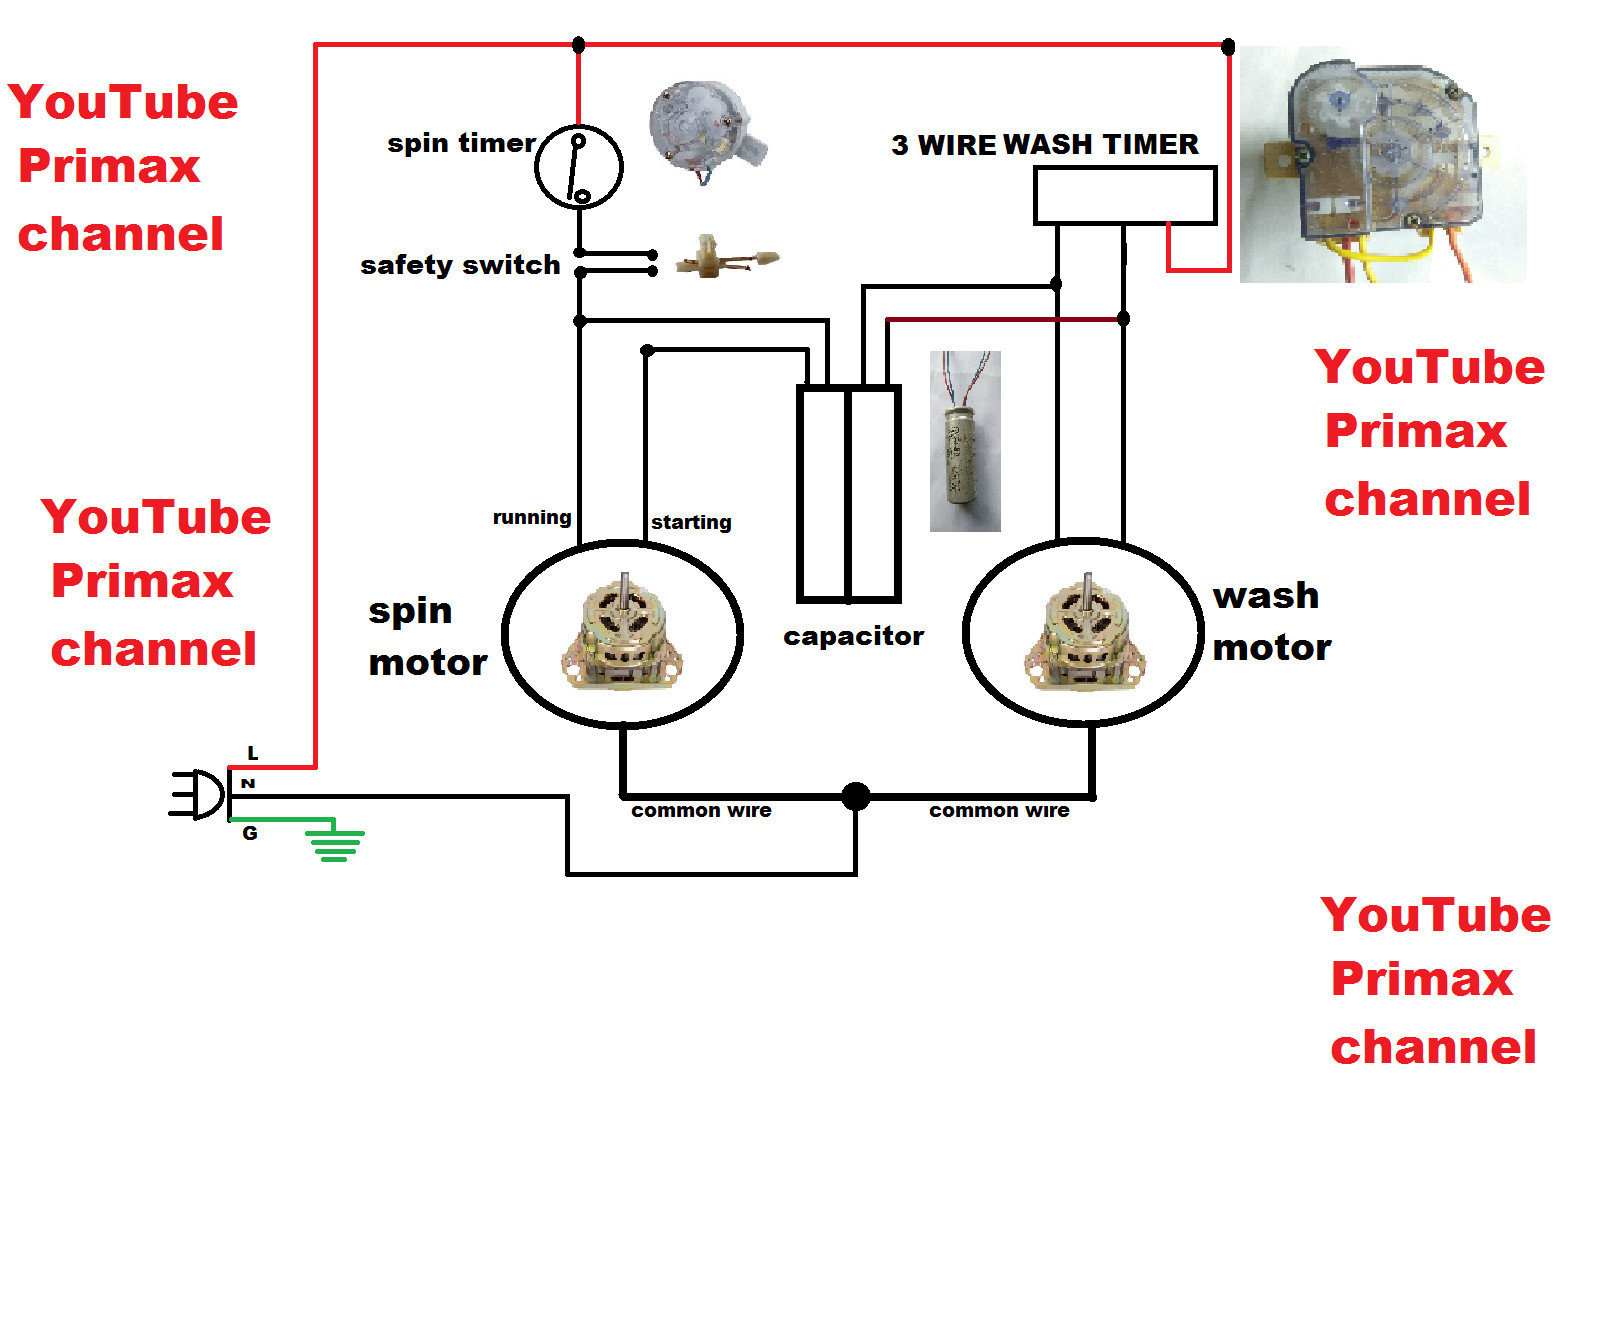 3 wire washing machine motor wiring diagram Download-Wiring Diagram for Washing Machine Fresh 3 Wier Timer Diagram Connection Simple Washing Machine Wiring 5-l